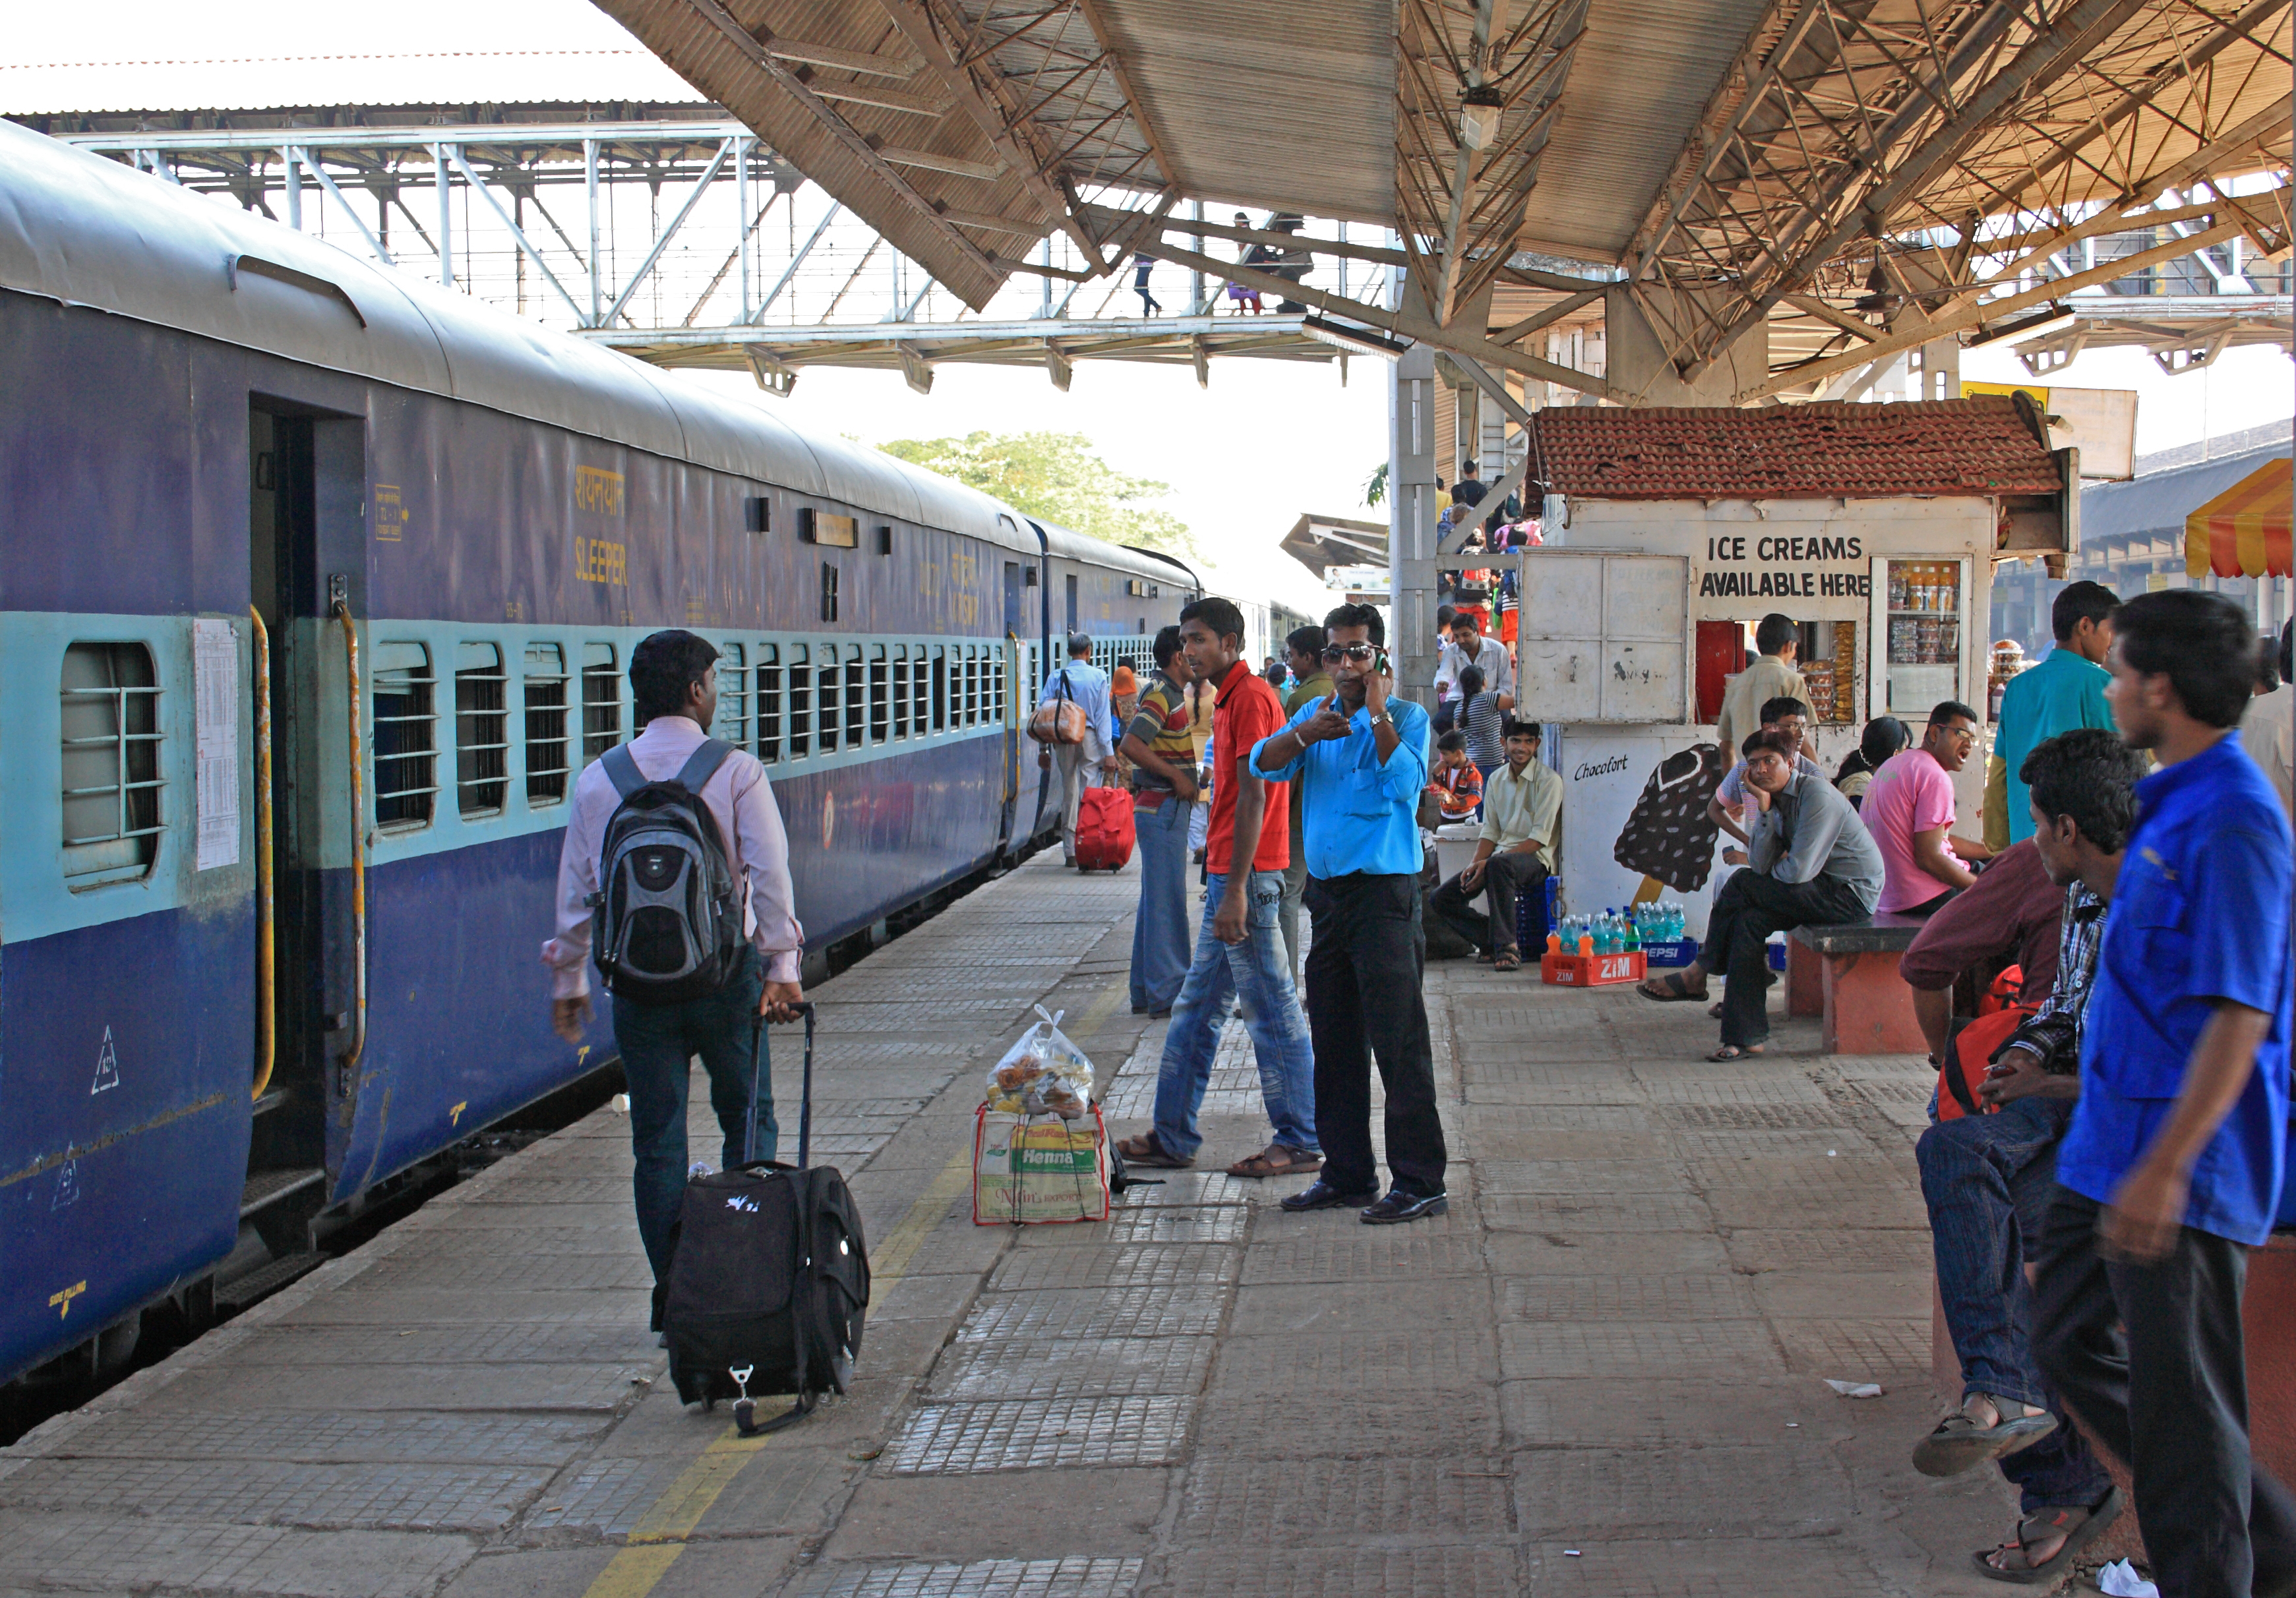 Short Article on a Scene at the Railway Station